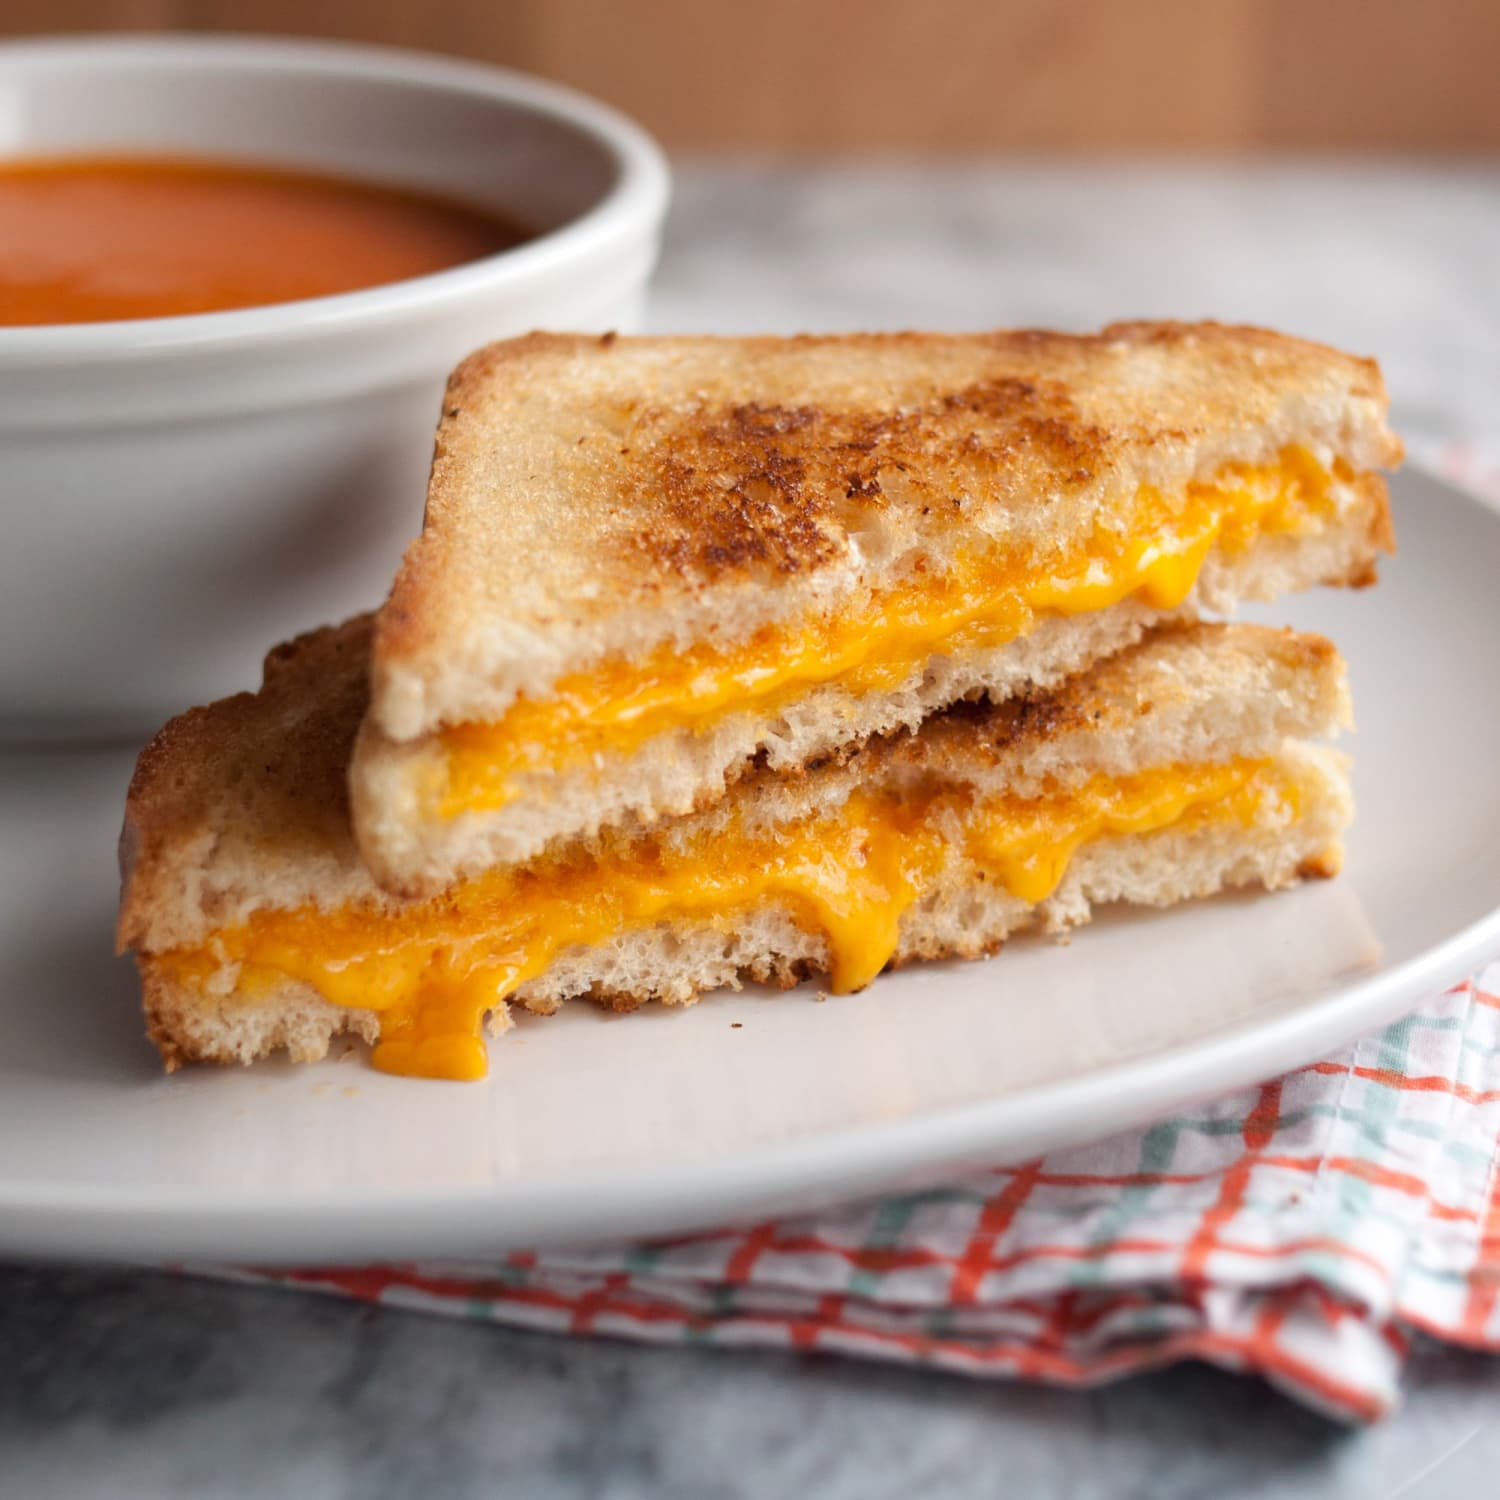 How To Make A Grilled Cheese Sandwich Kitchn